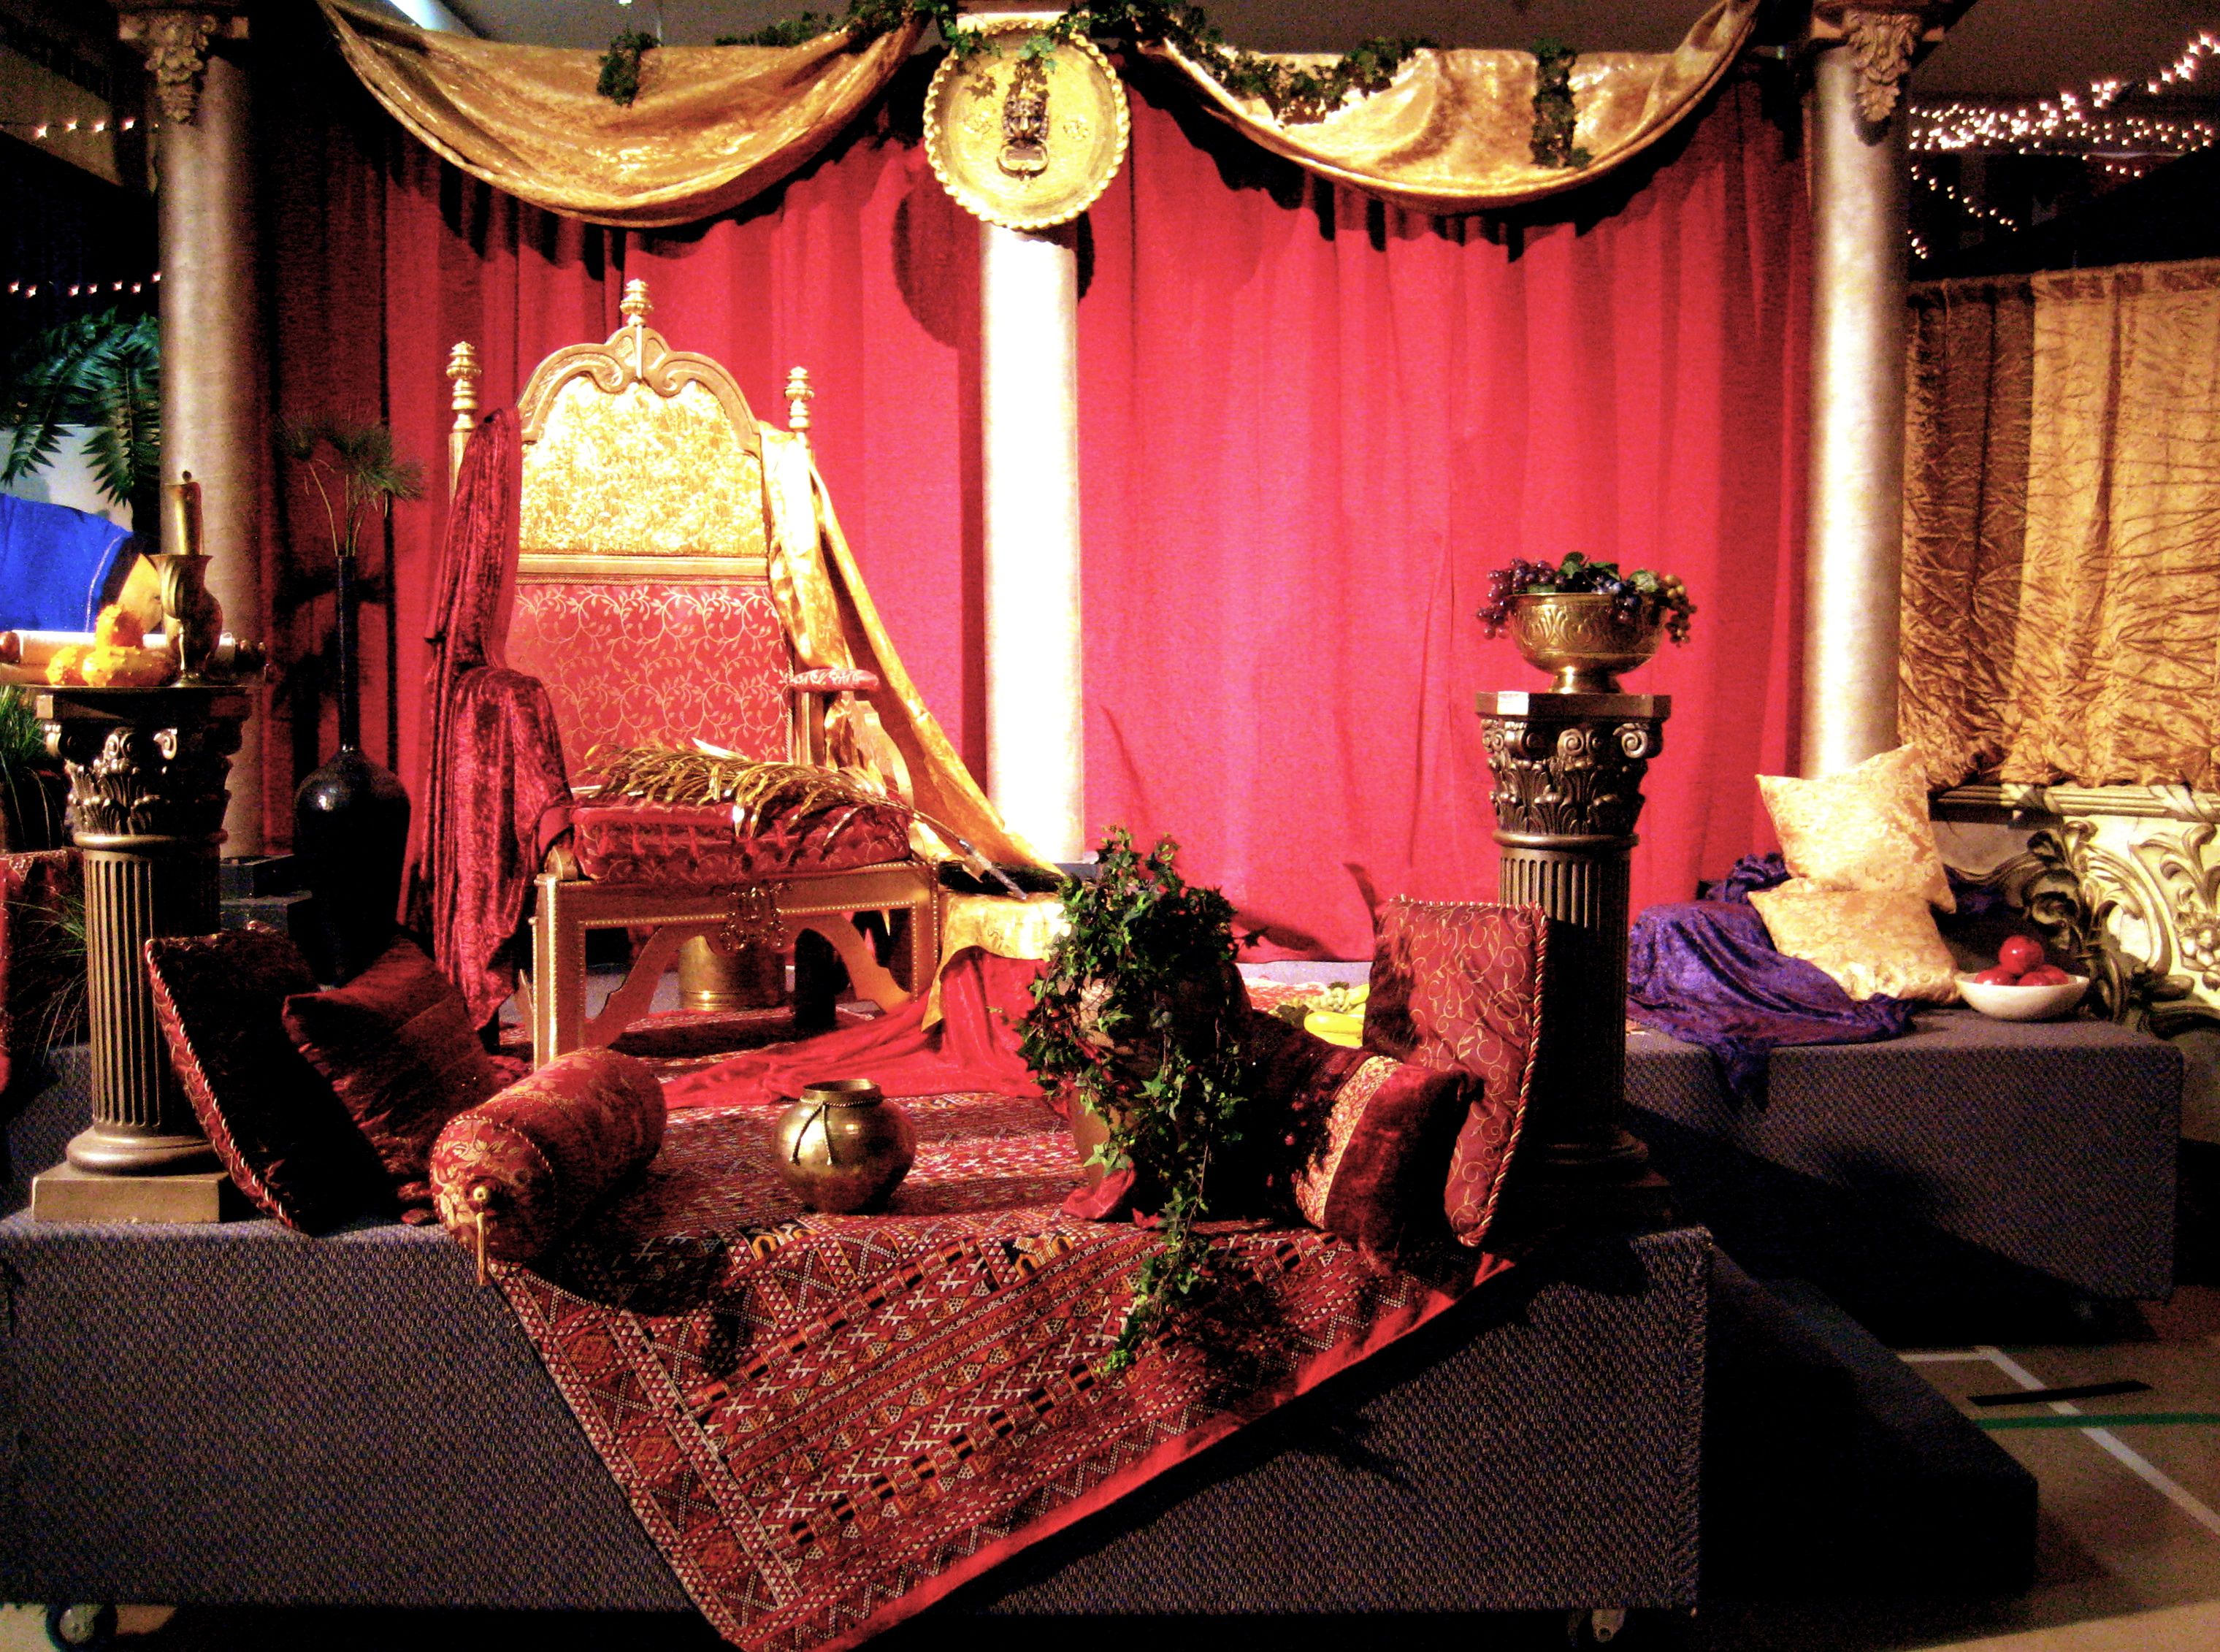 king herod/palace - Google Search | Christmas pageant, Stage decorations, Royal christmas